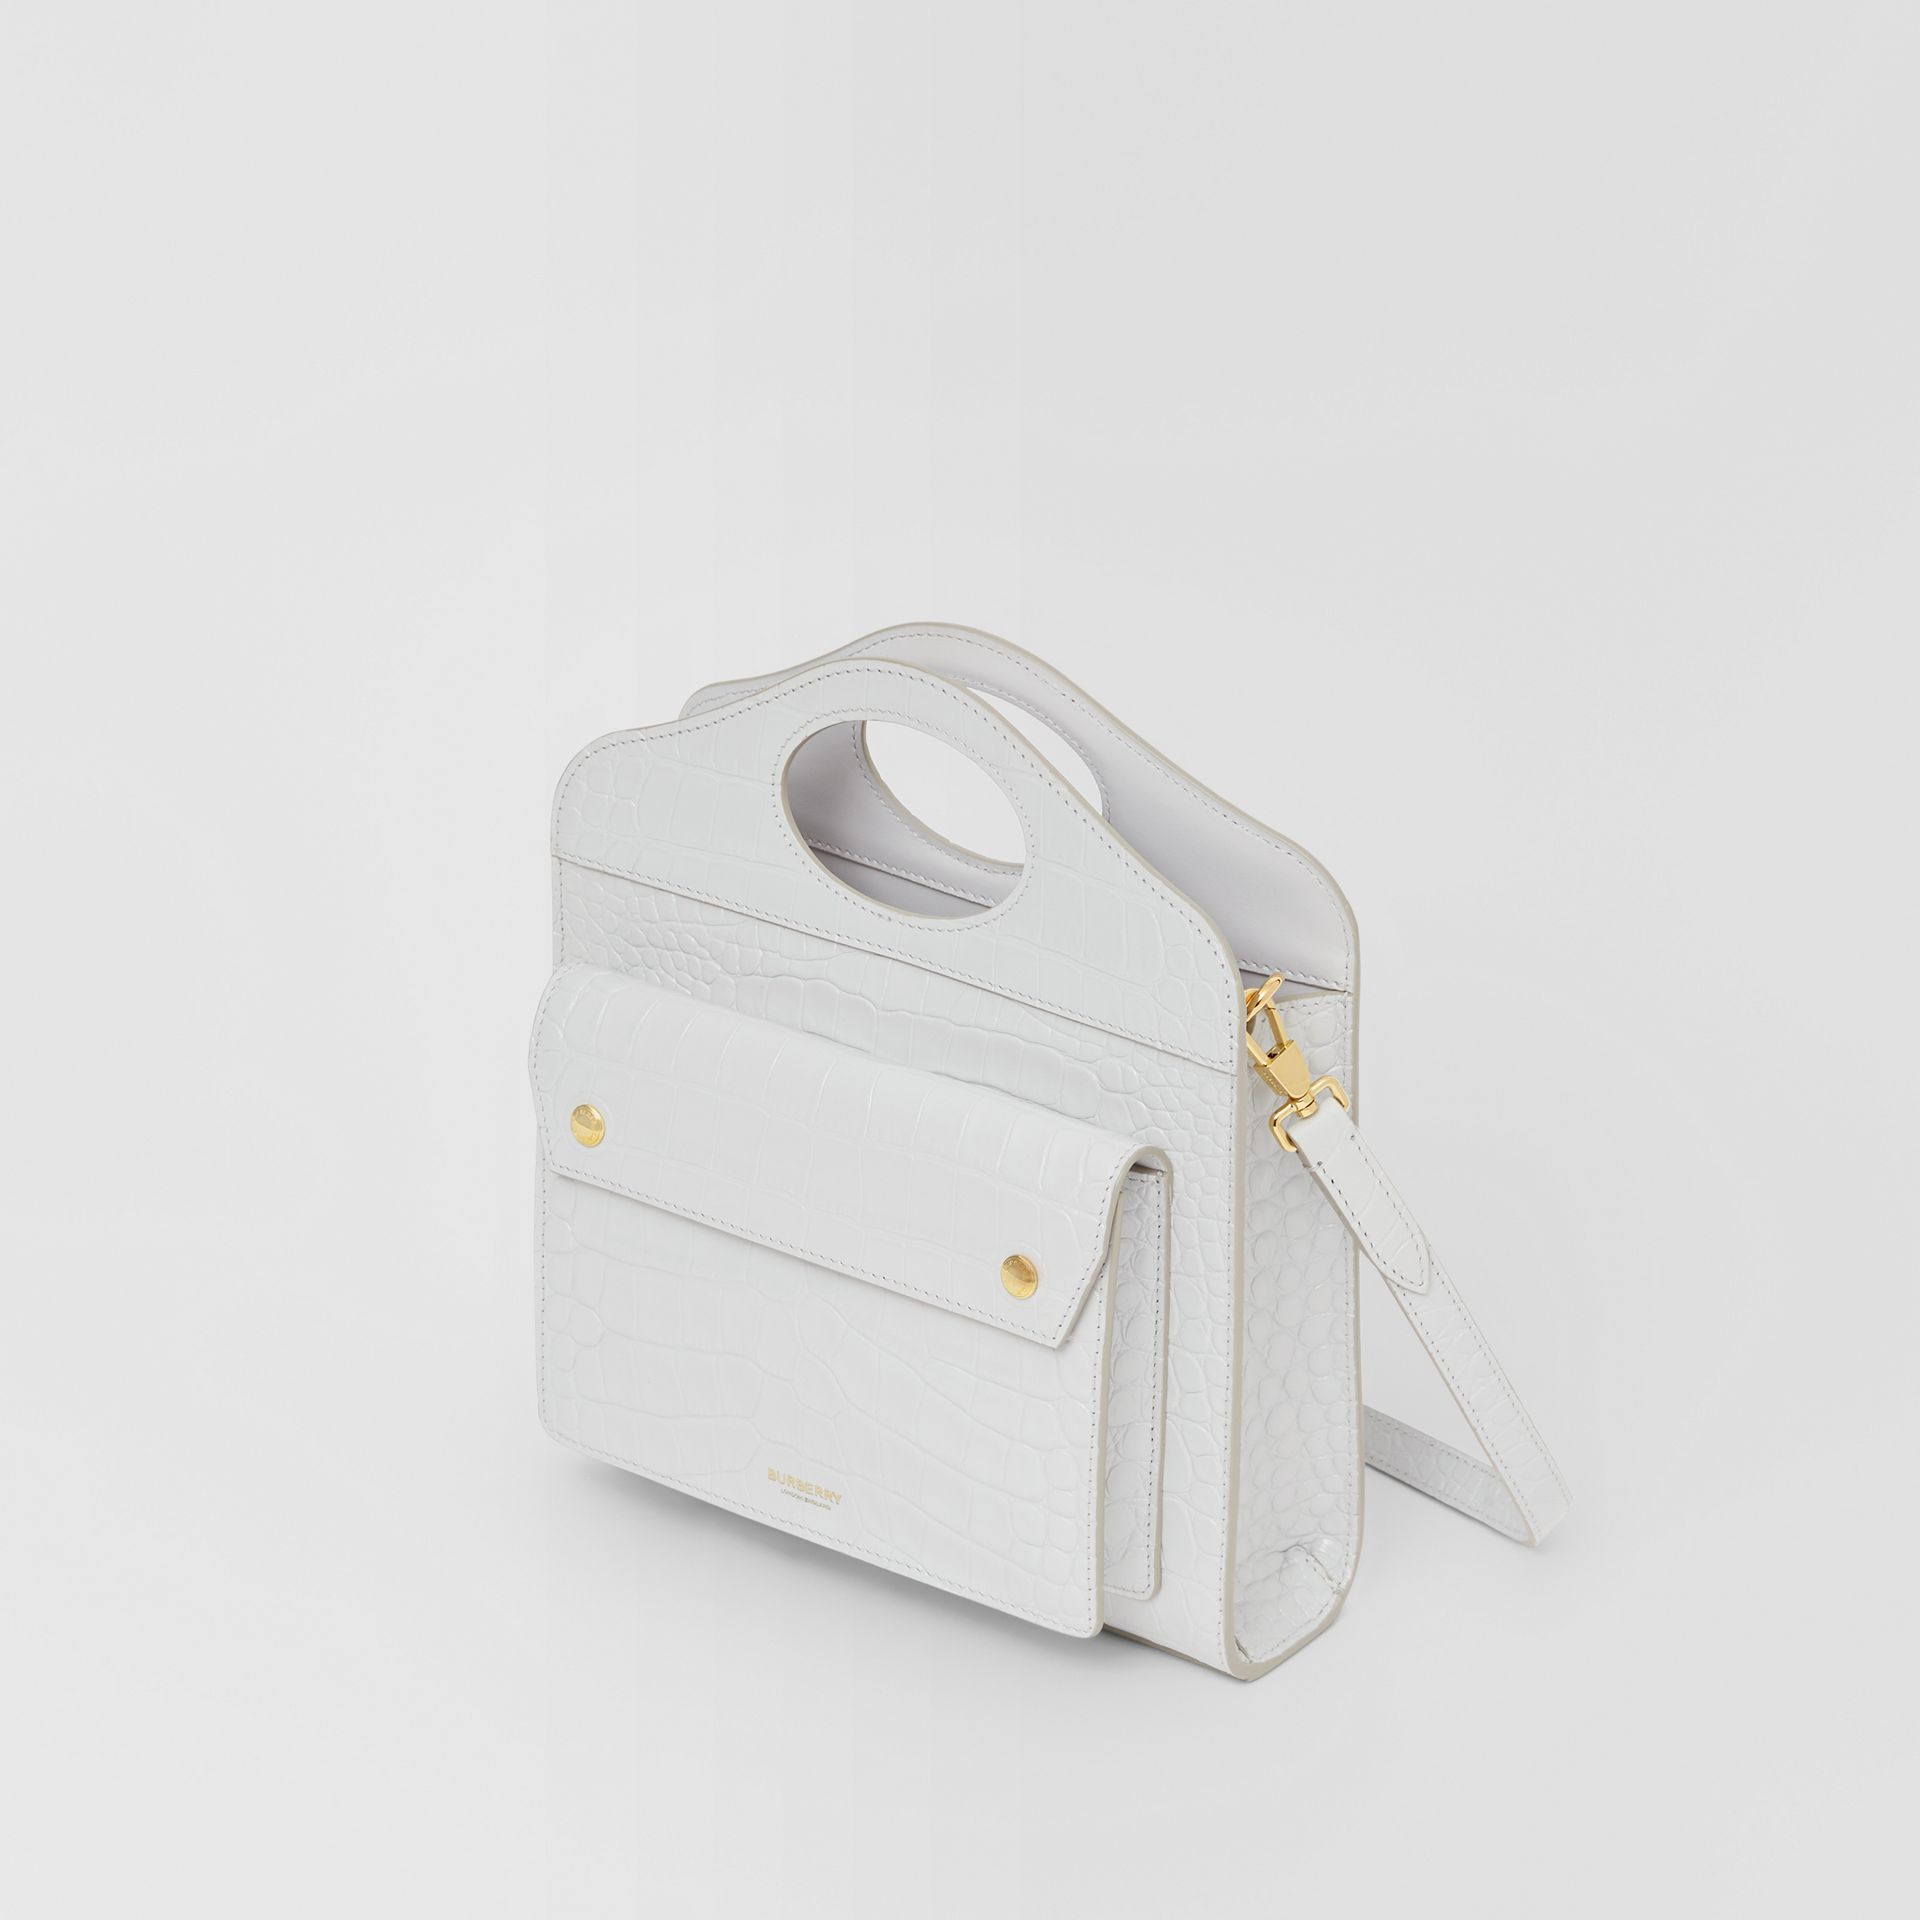 Mini sac Pocket en cuir embossé (Gris Galet Clair) - Femme | Burberry Canada - photo de la galerie 3